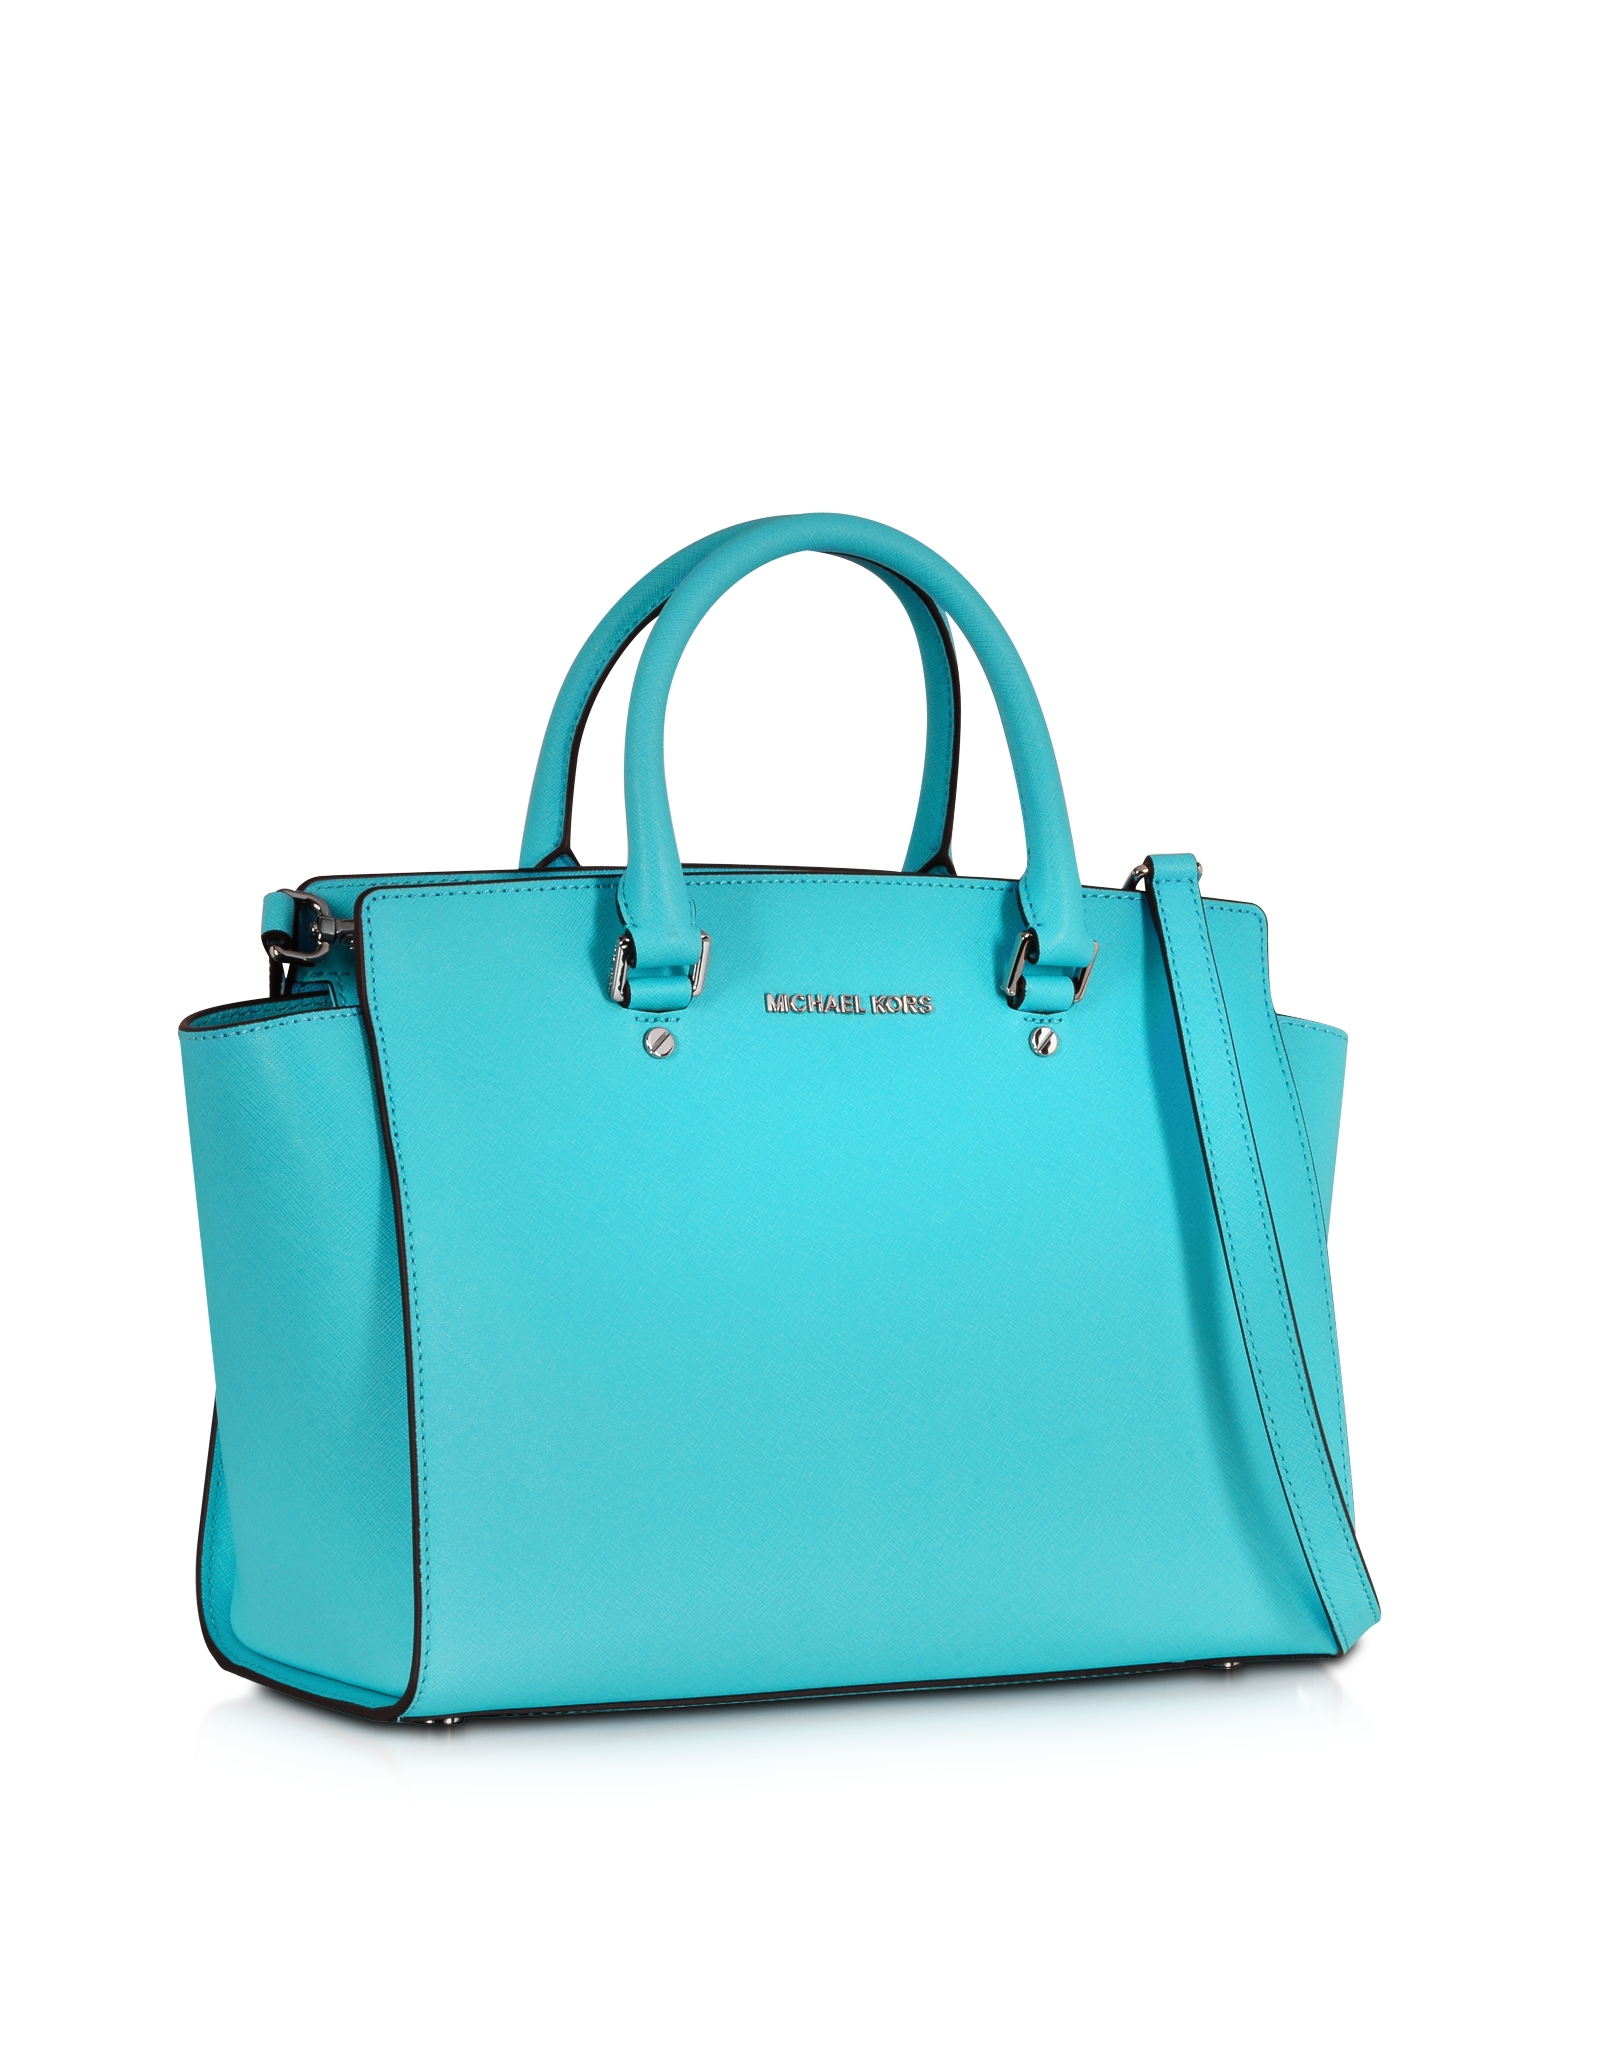 24351ec4e4b6f9 Michael Kors Selma Aquamarine Saffiano Leather Large Top-Zip Satchel ...